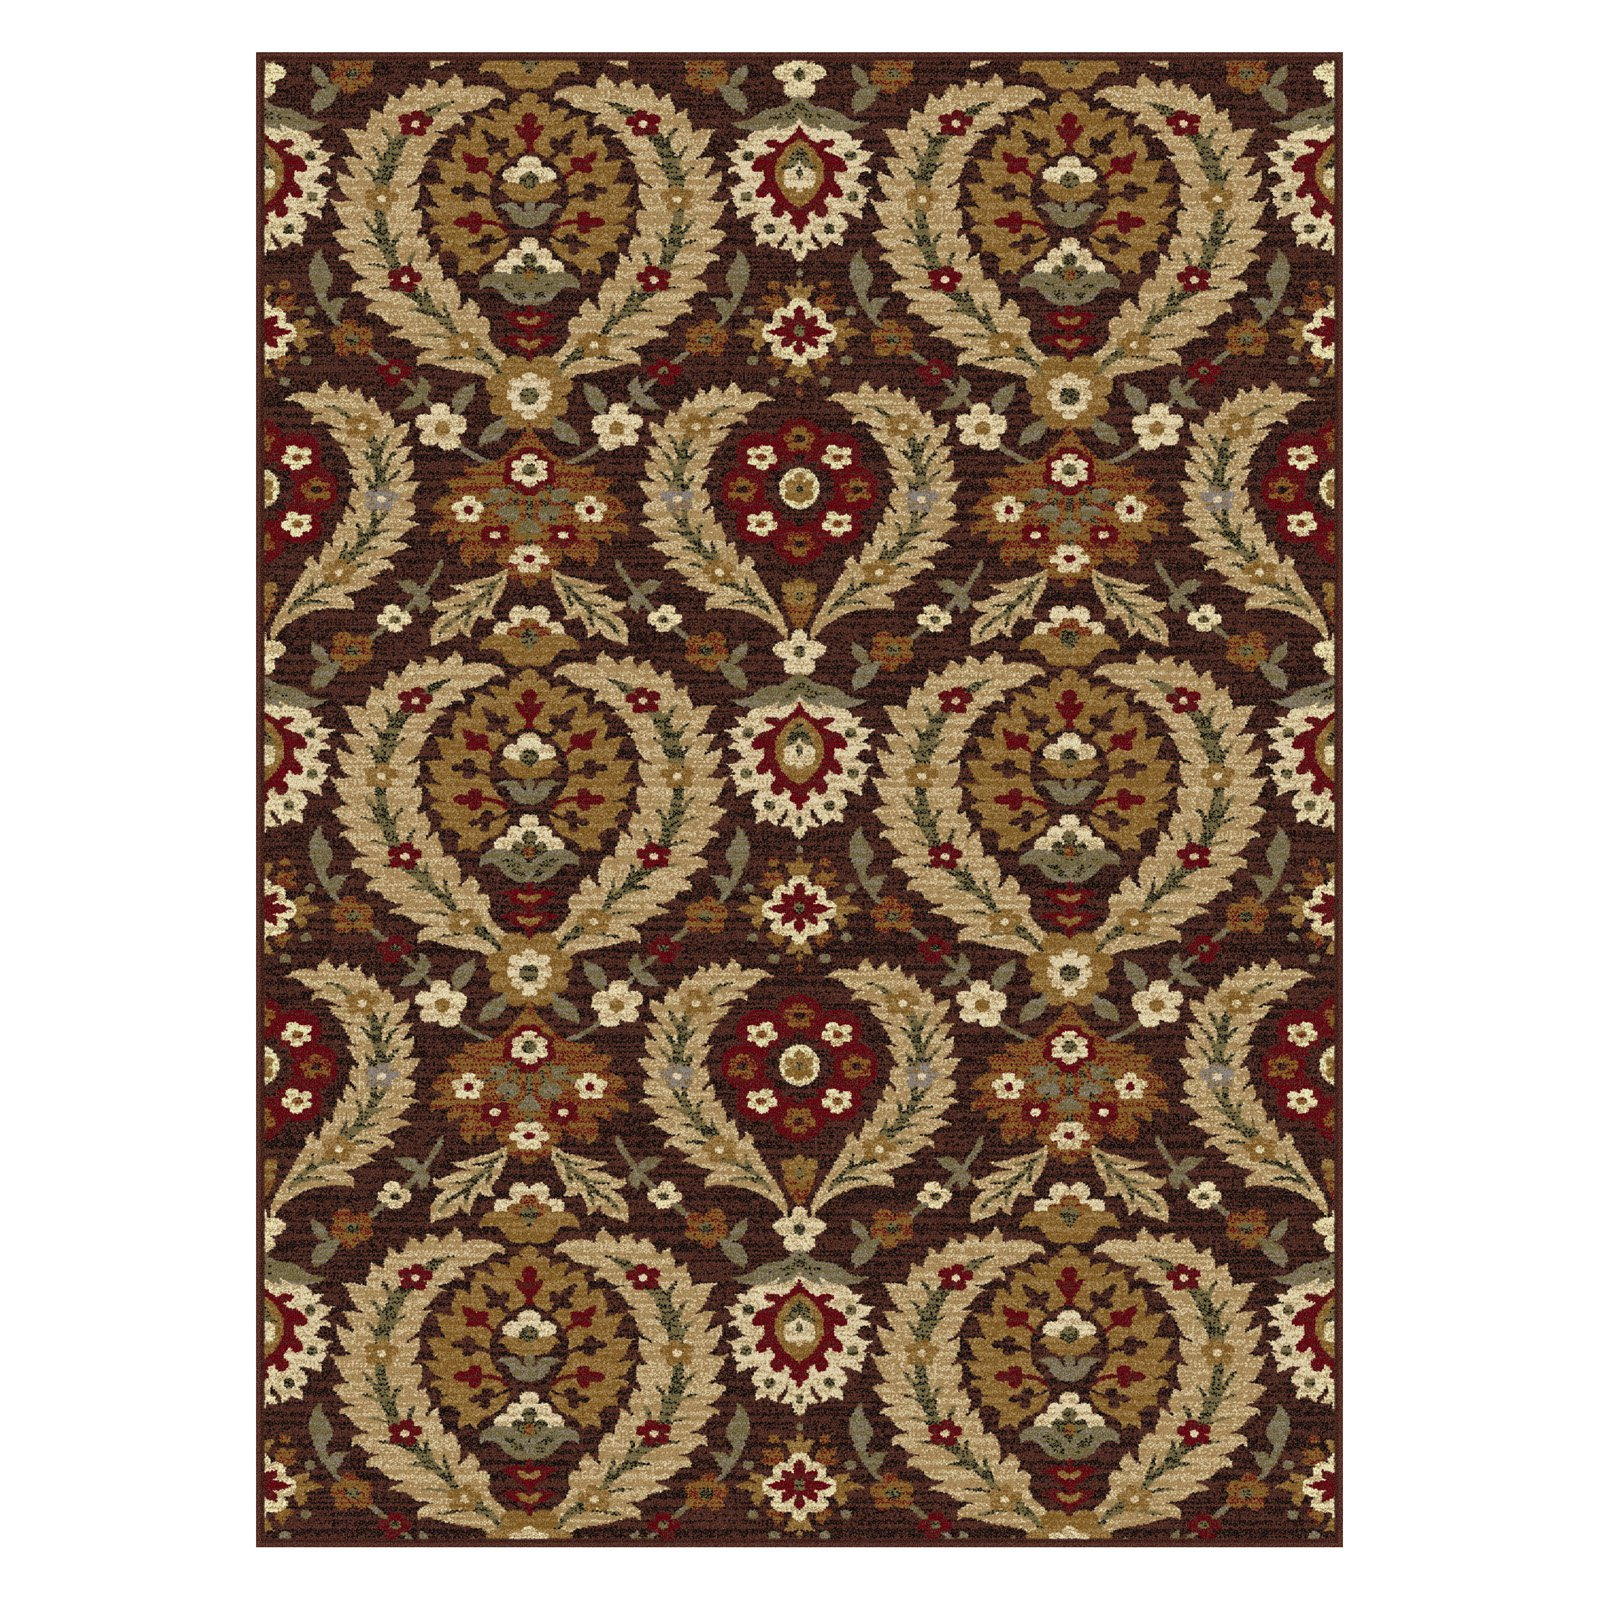 Tayse Impressions Area Rugs - 7878 Transitional Casual Brown Vines Leaves Circles Rug